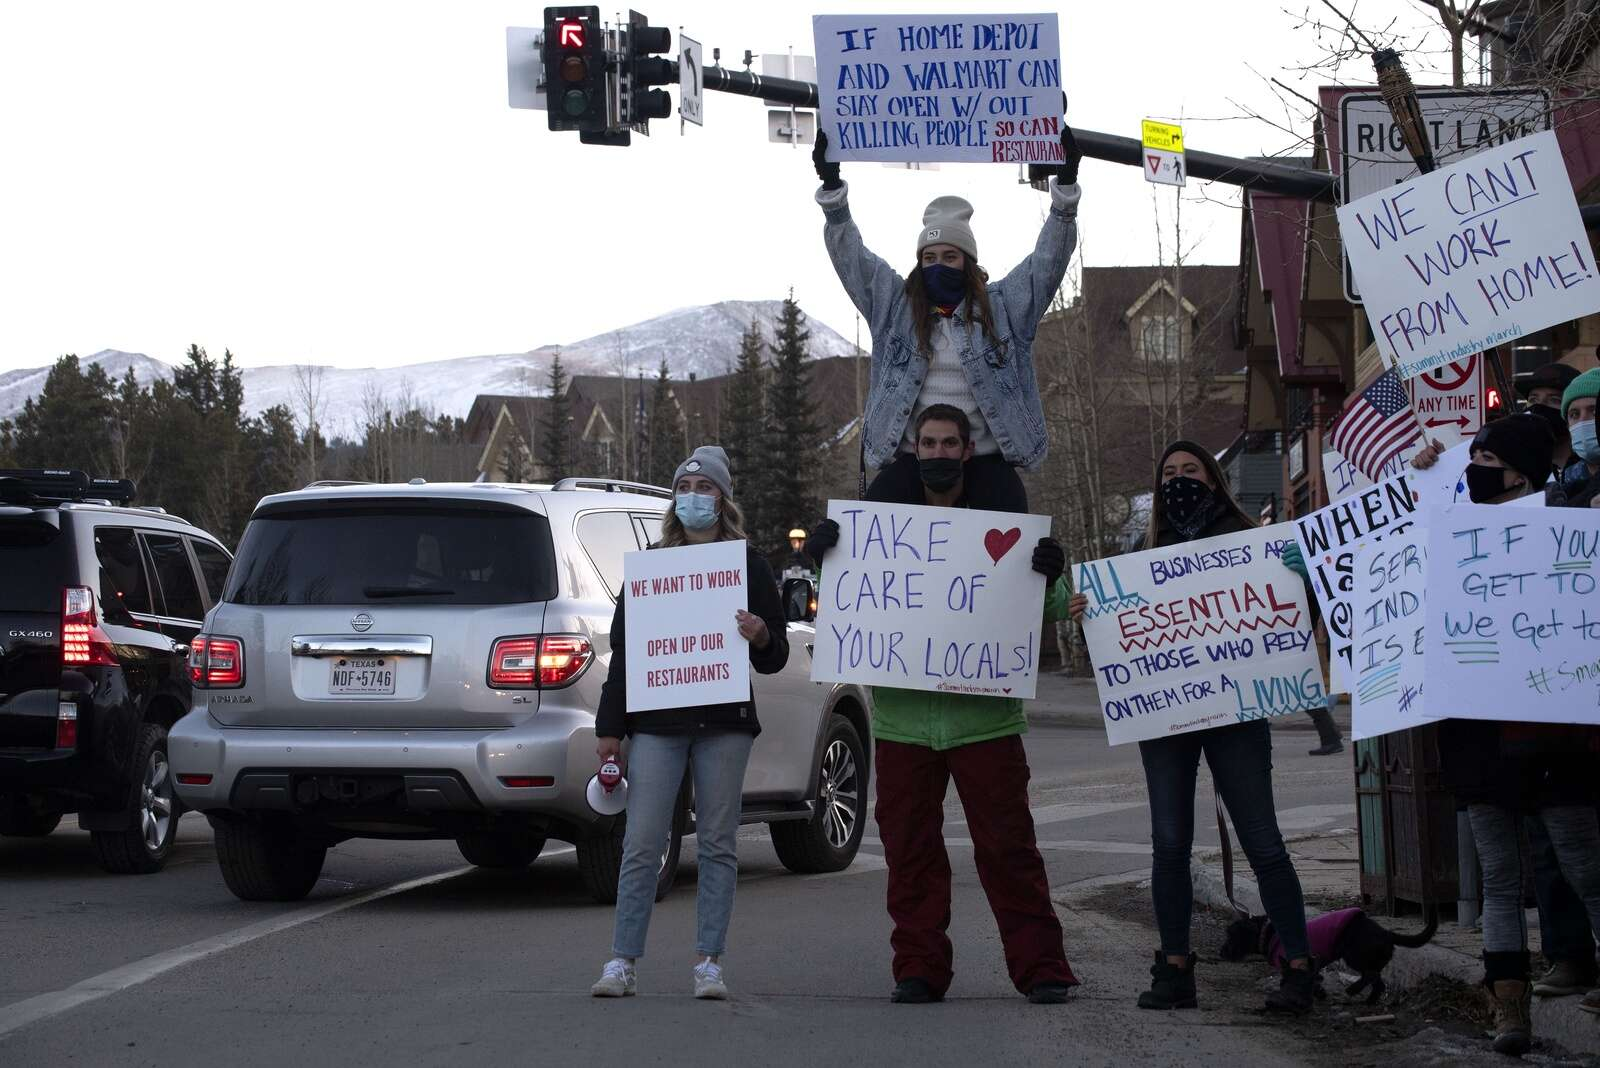 Summit County service industry workers stand at the intersection of Main Street and Park Avenue in Breckenridge on Monday, Nov. 23, while protesting the prohibition of in-person dining at restaurants.